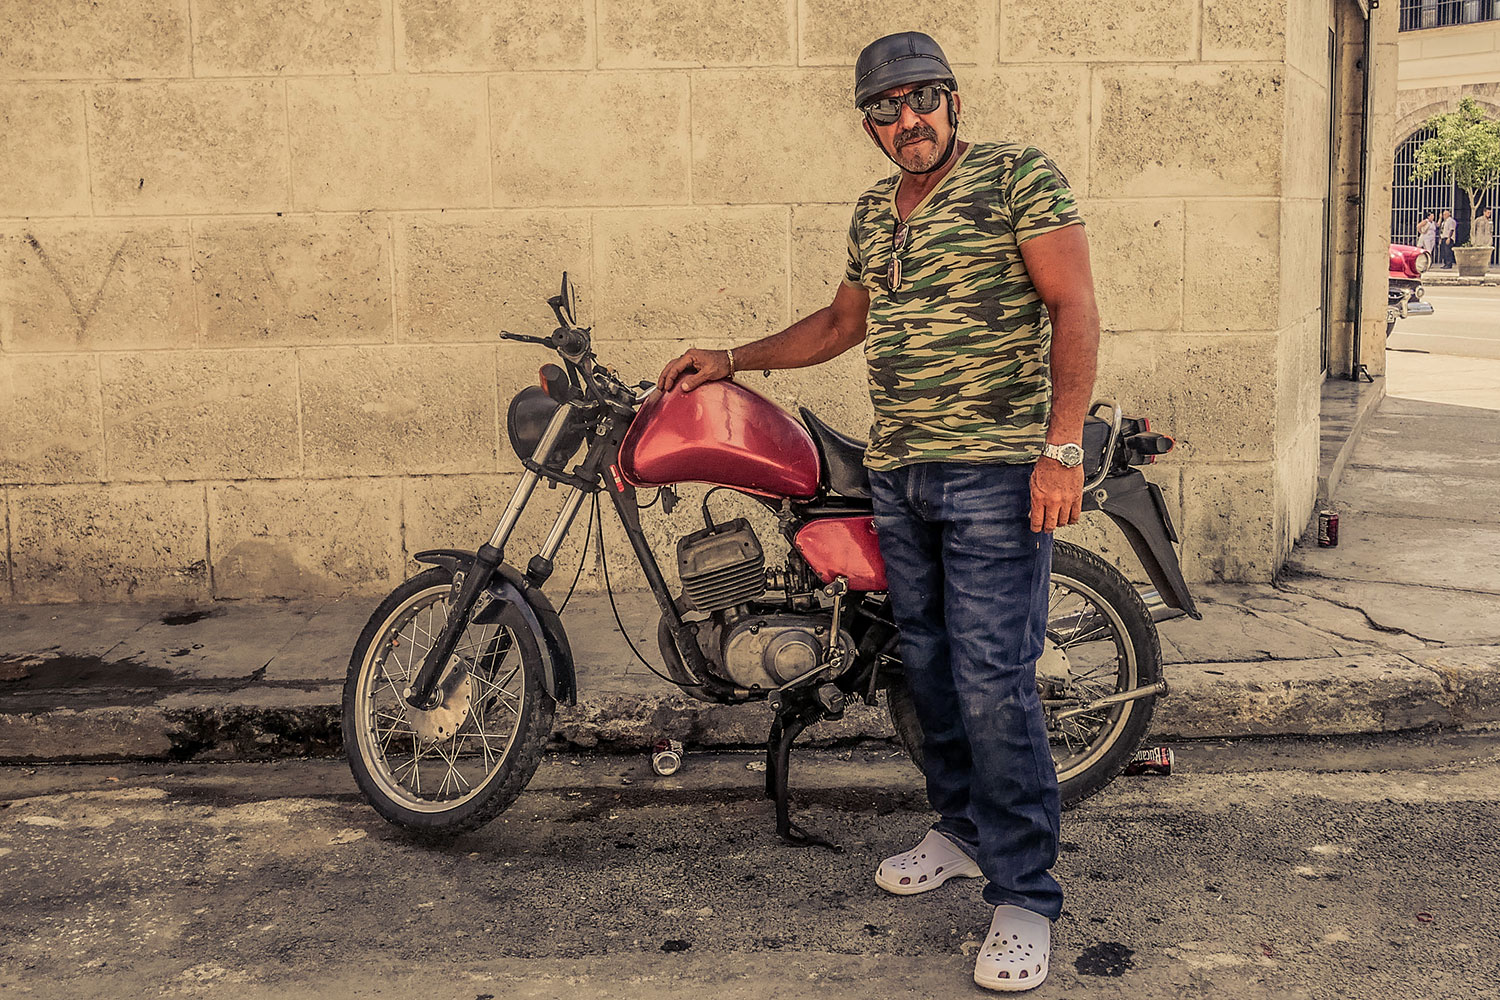 Cuban guy in Resurgence Gears, Pekev® Lite, Dark Blue motorcycle jeans - Picture by Dean Saffron 3